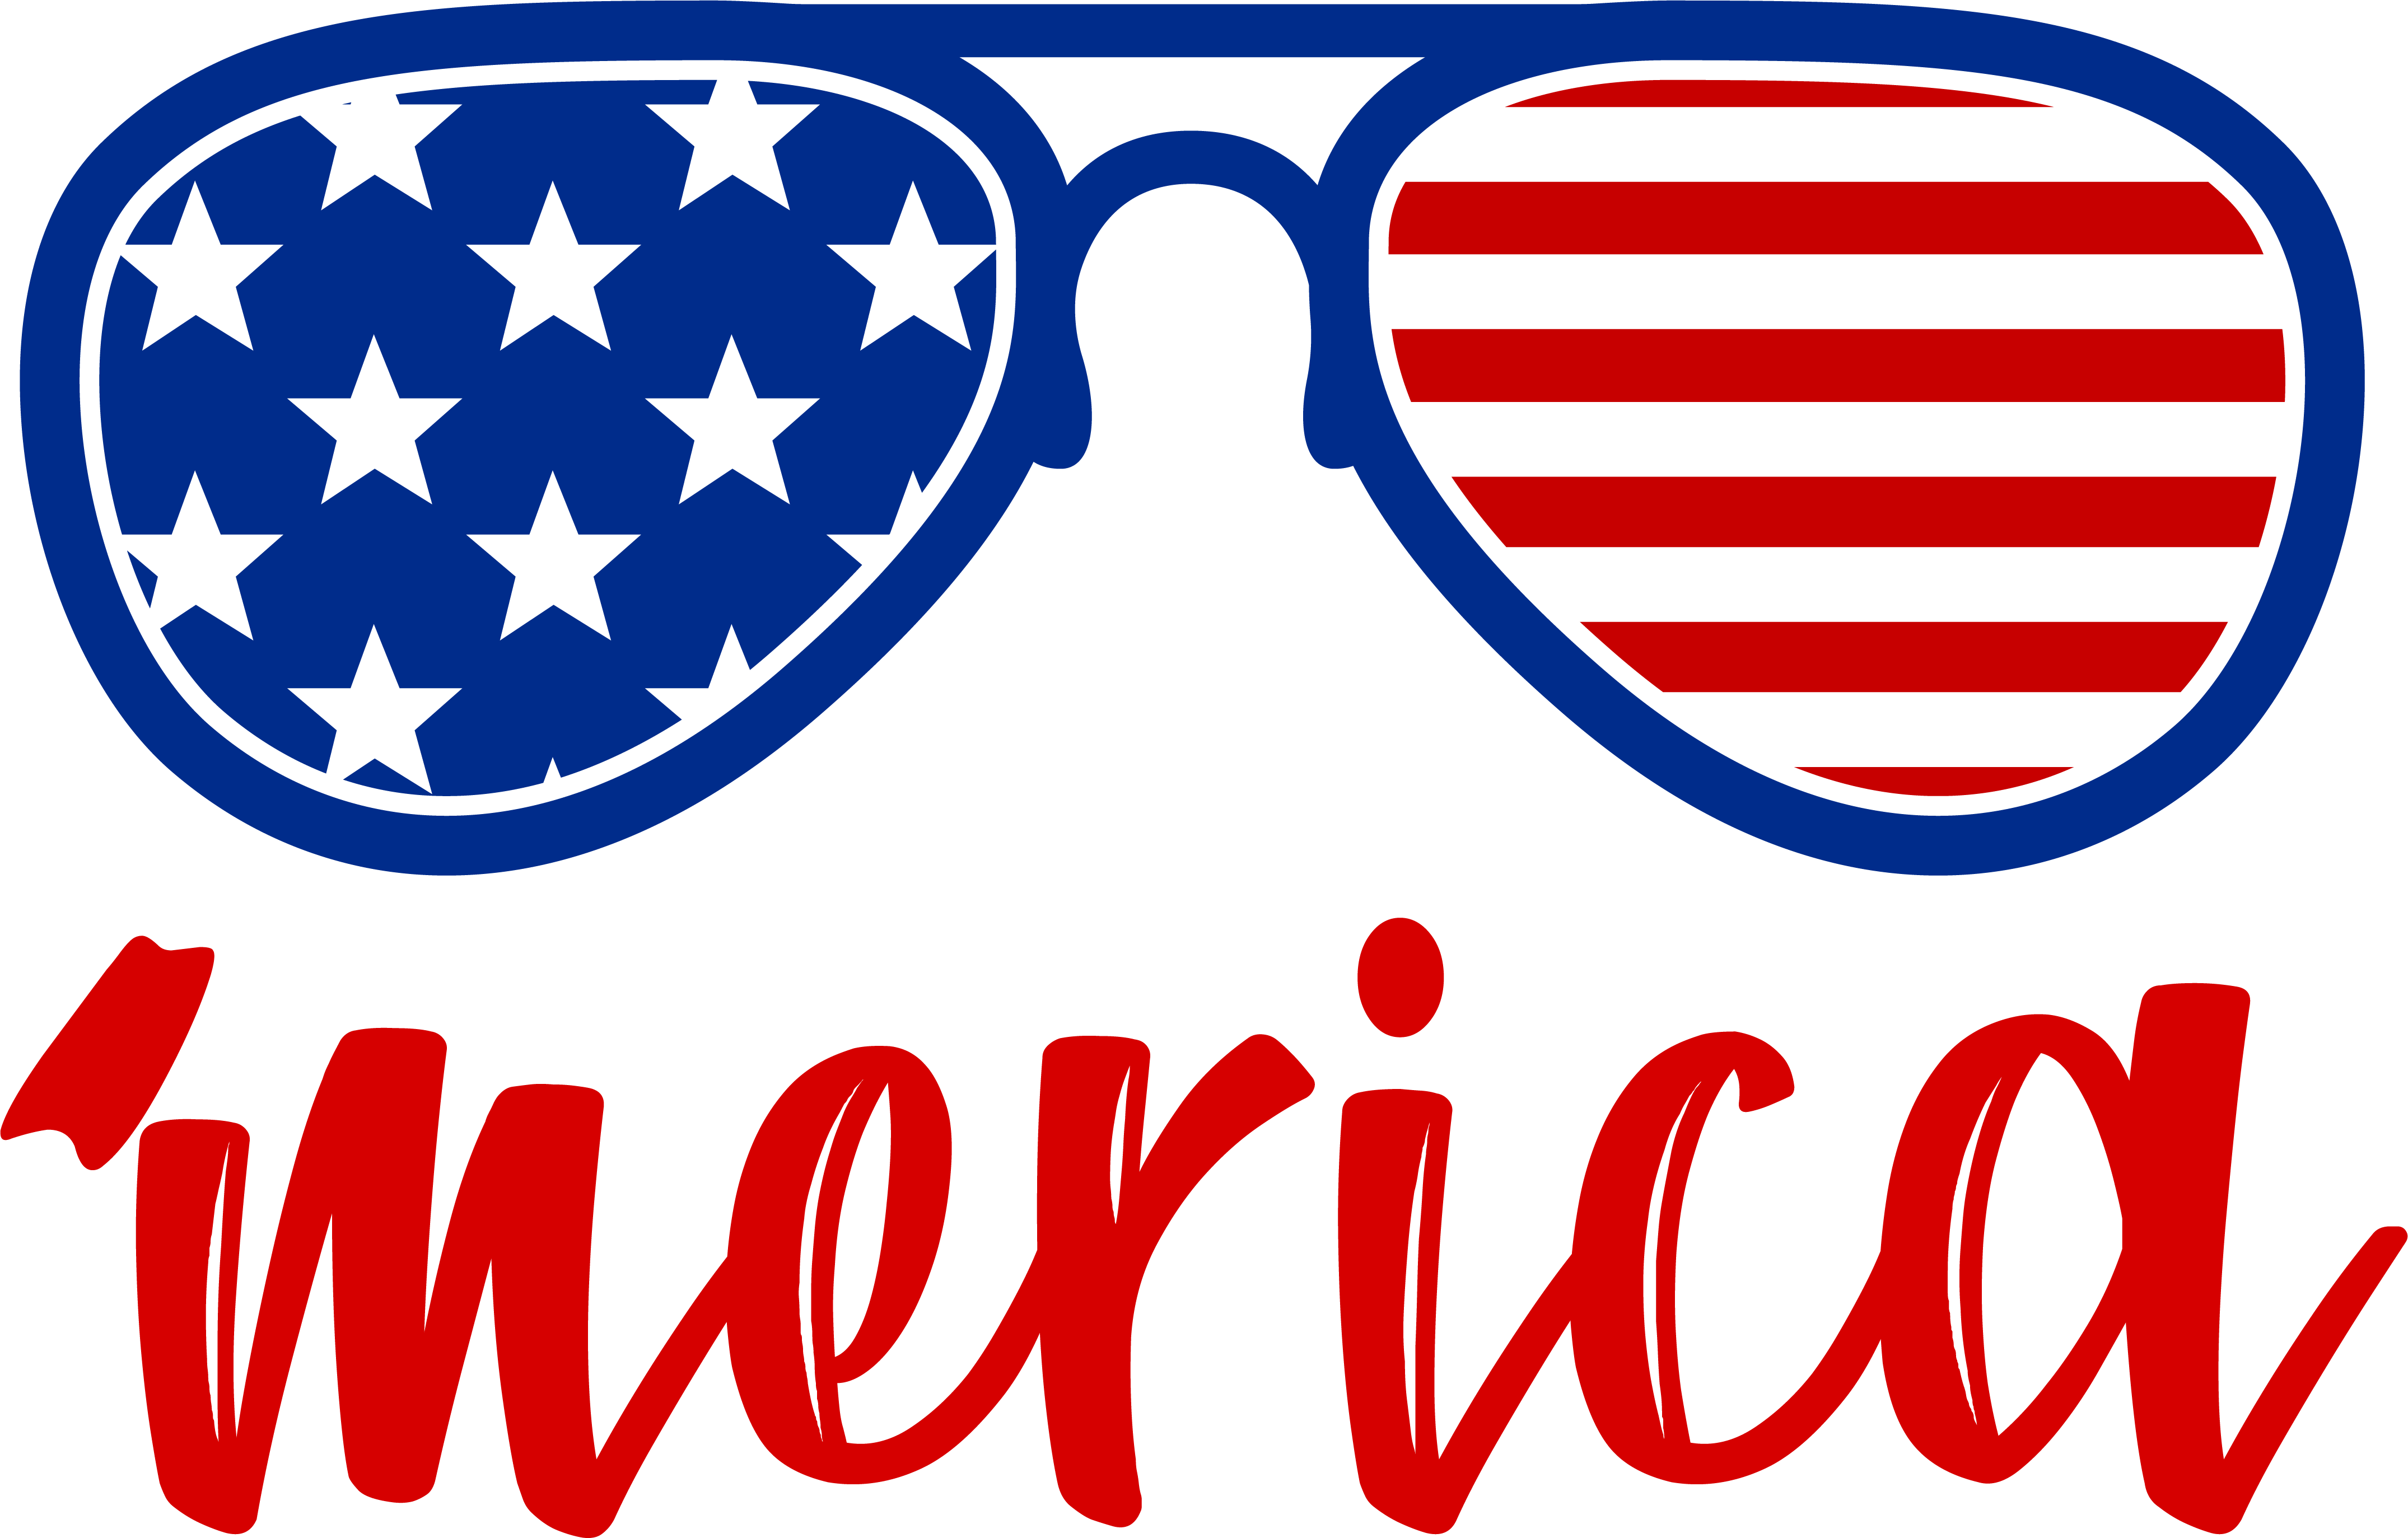 Download Free Merica 4th Of July Independence Day Graphic By Bestsvgfiles for Cricut Explore, Silhouette and other cutting machines.